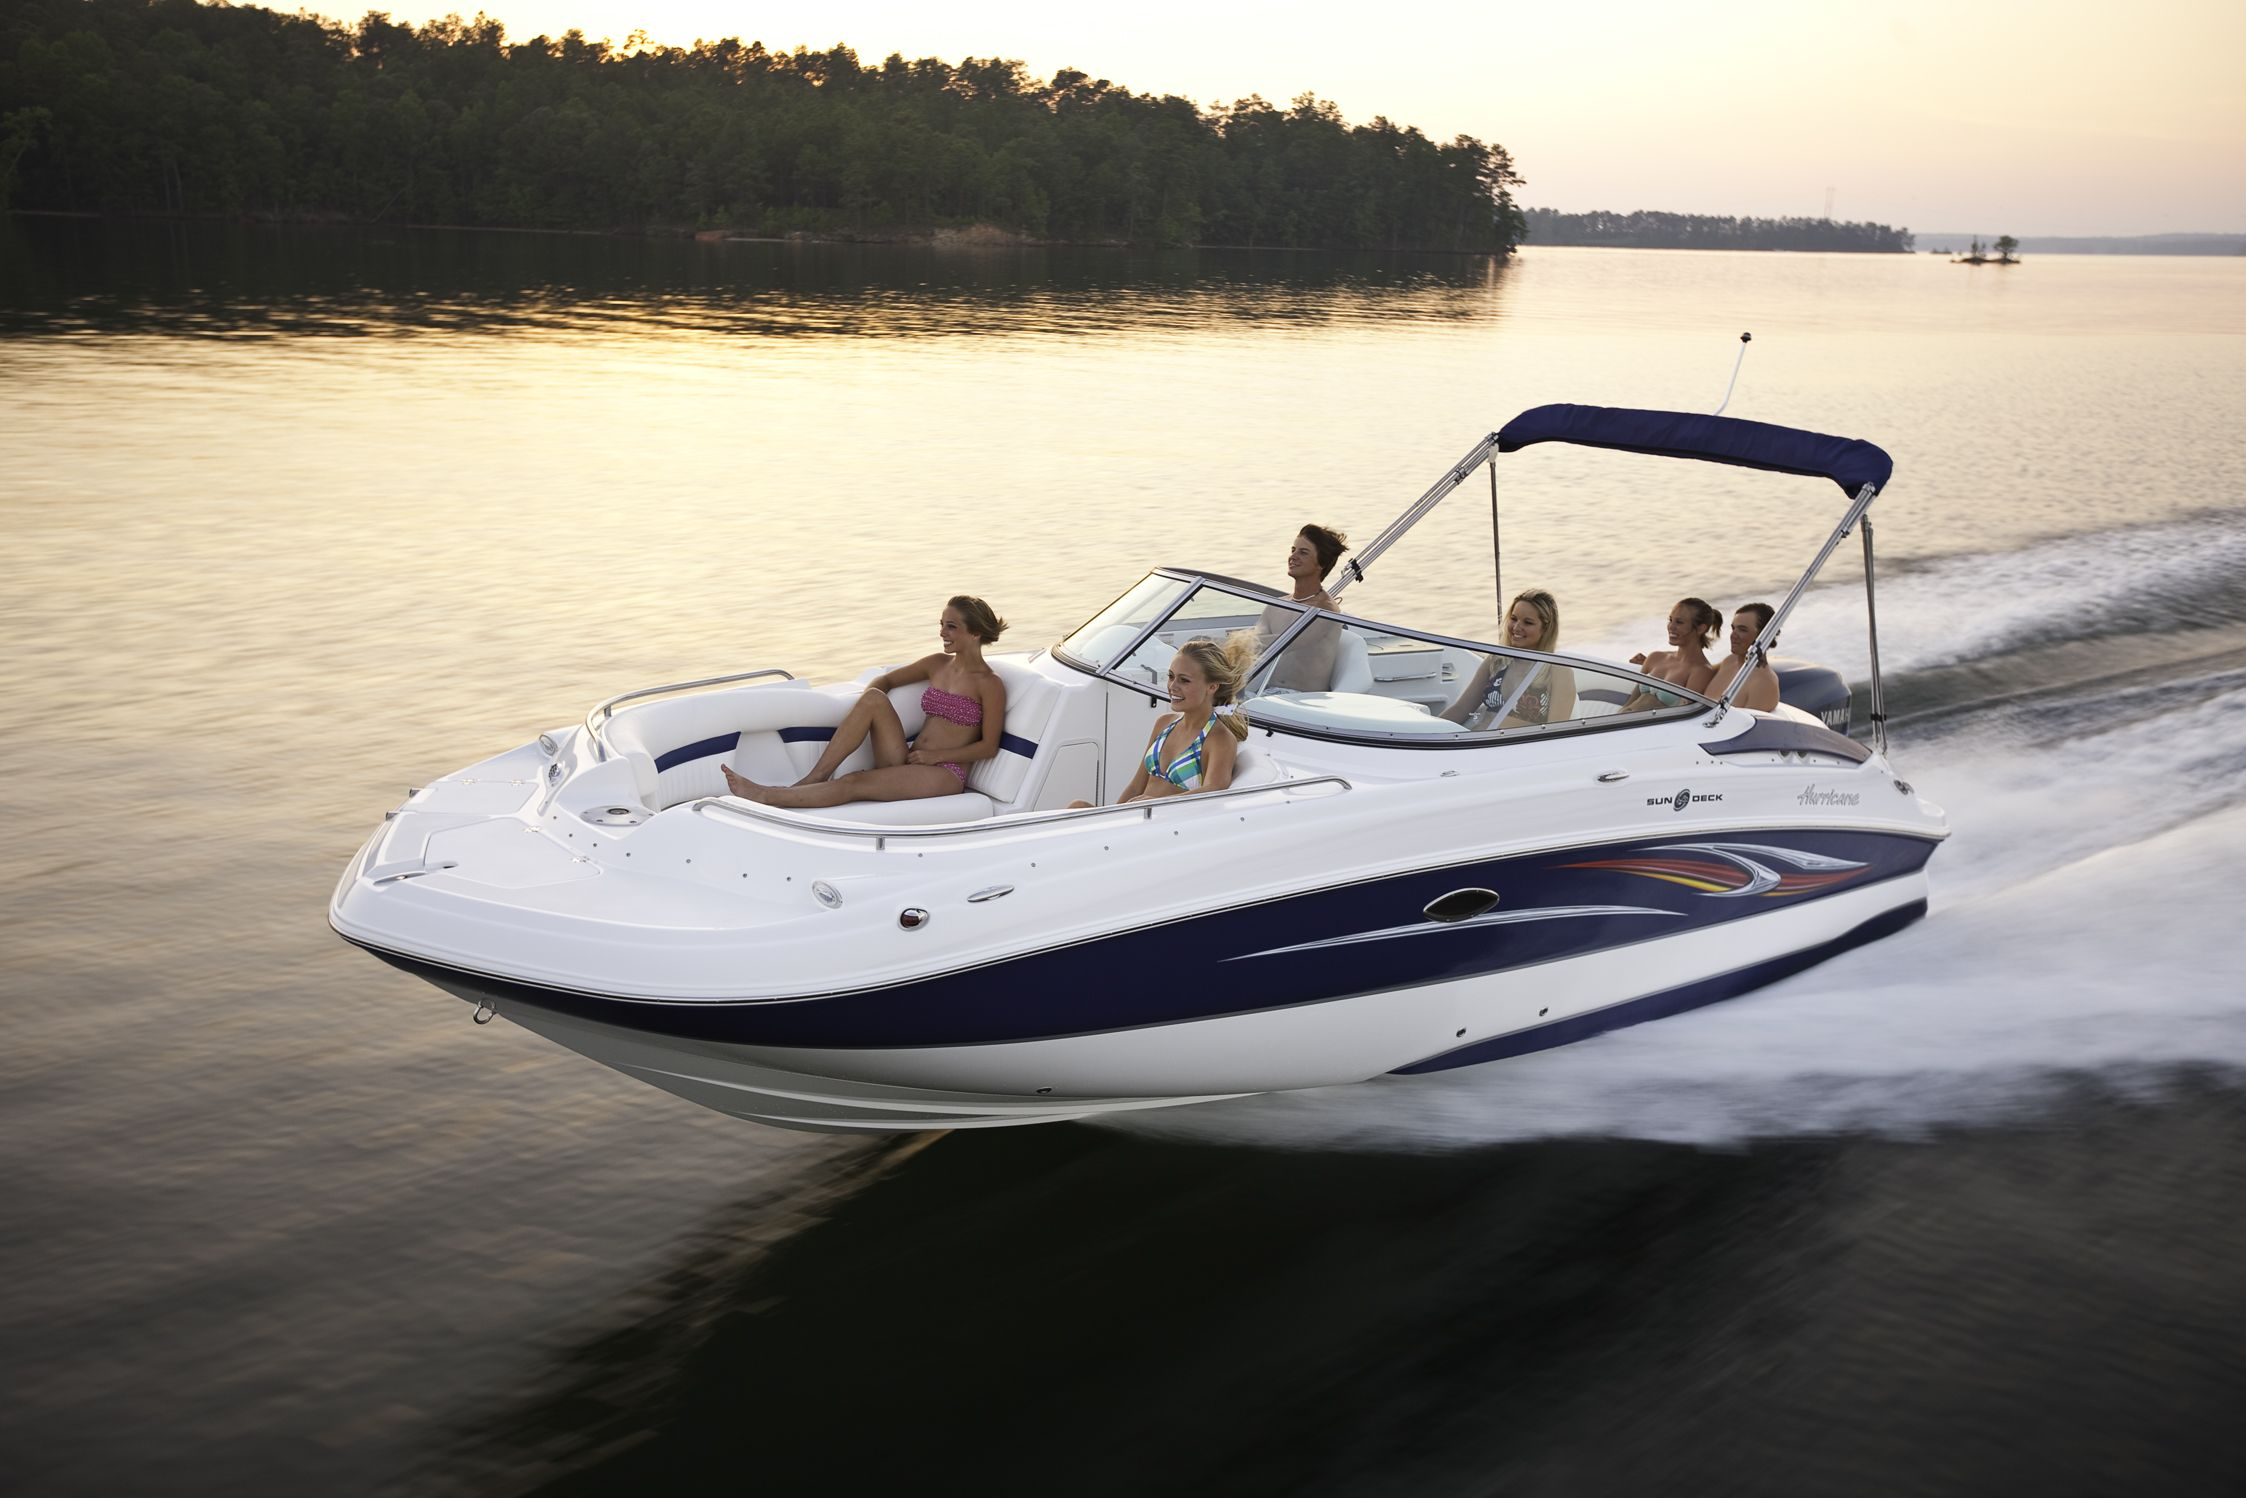 2400 Our Top Selling Hurricane Deck Boat Palm Beach Boat Show Hurricane Deck Boat Boat